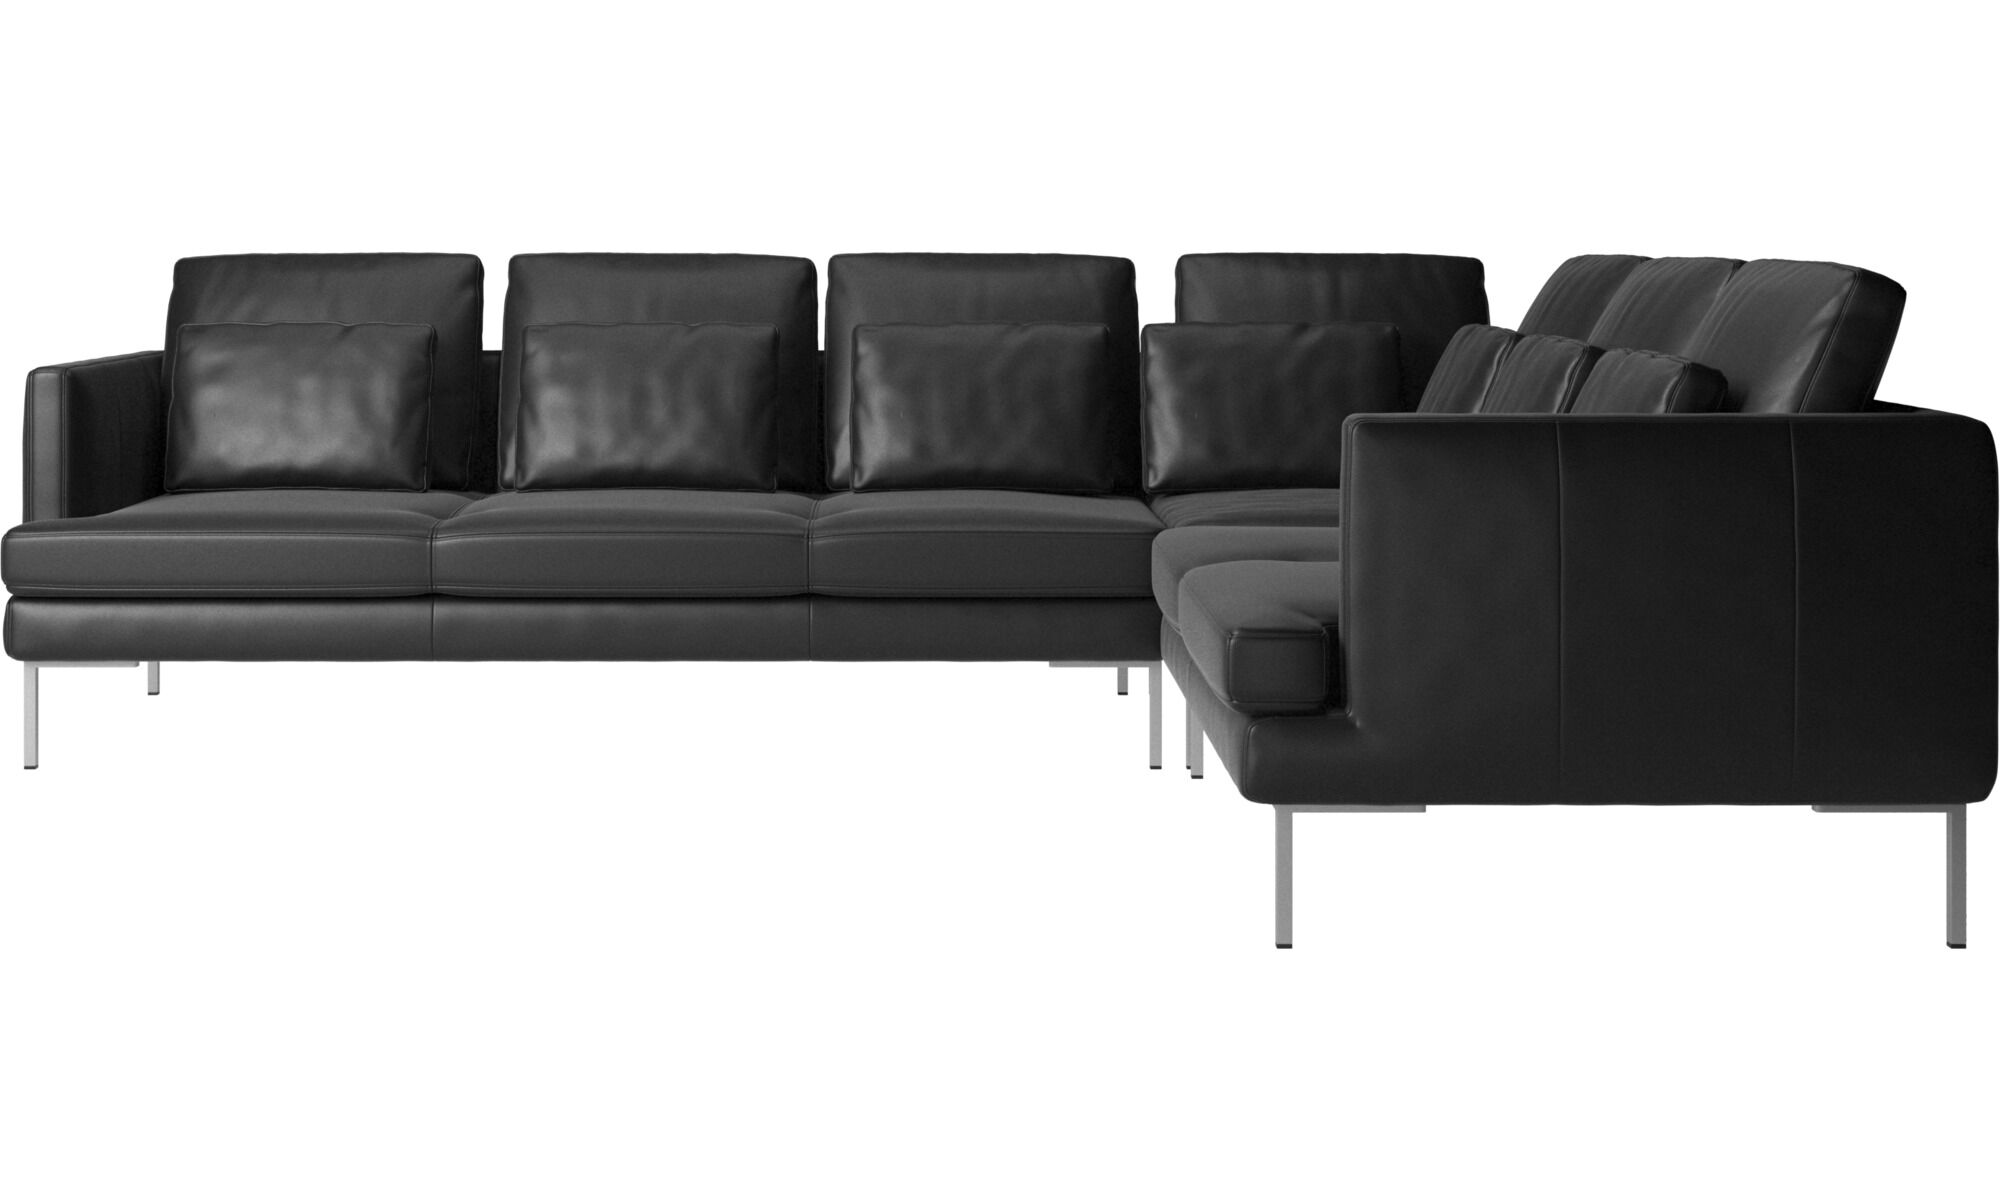 Furniture Cool Stylish Luxury Furniture Living Room Sofa Leather Sofa Modern Grain Leather New Special 8261 Fast Color